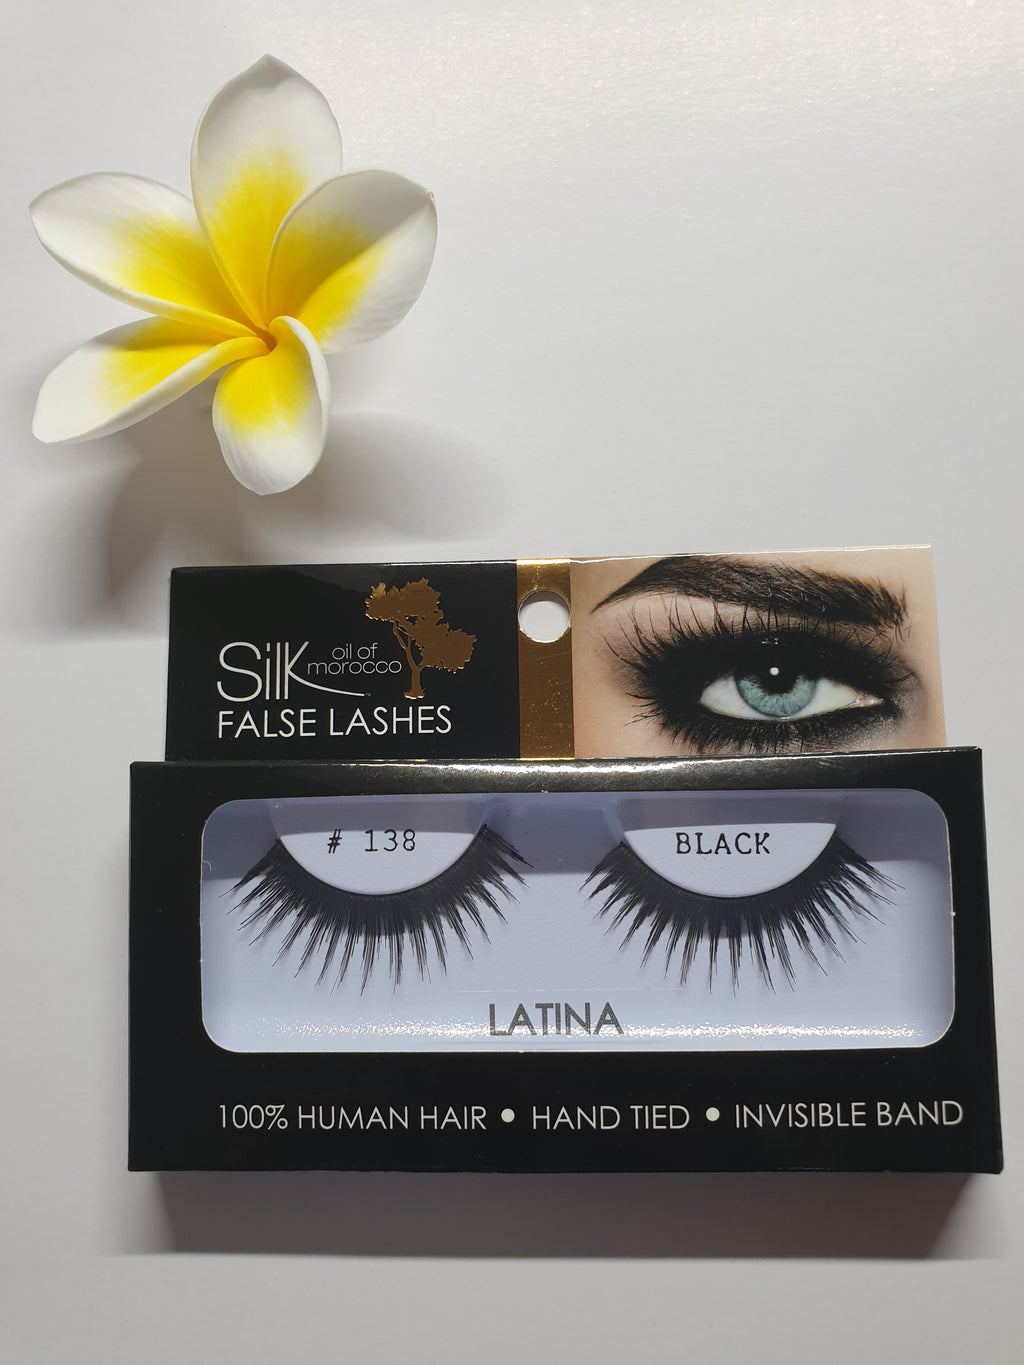 Silk Oil of Morocco Vegan Strip False Lashes Latina